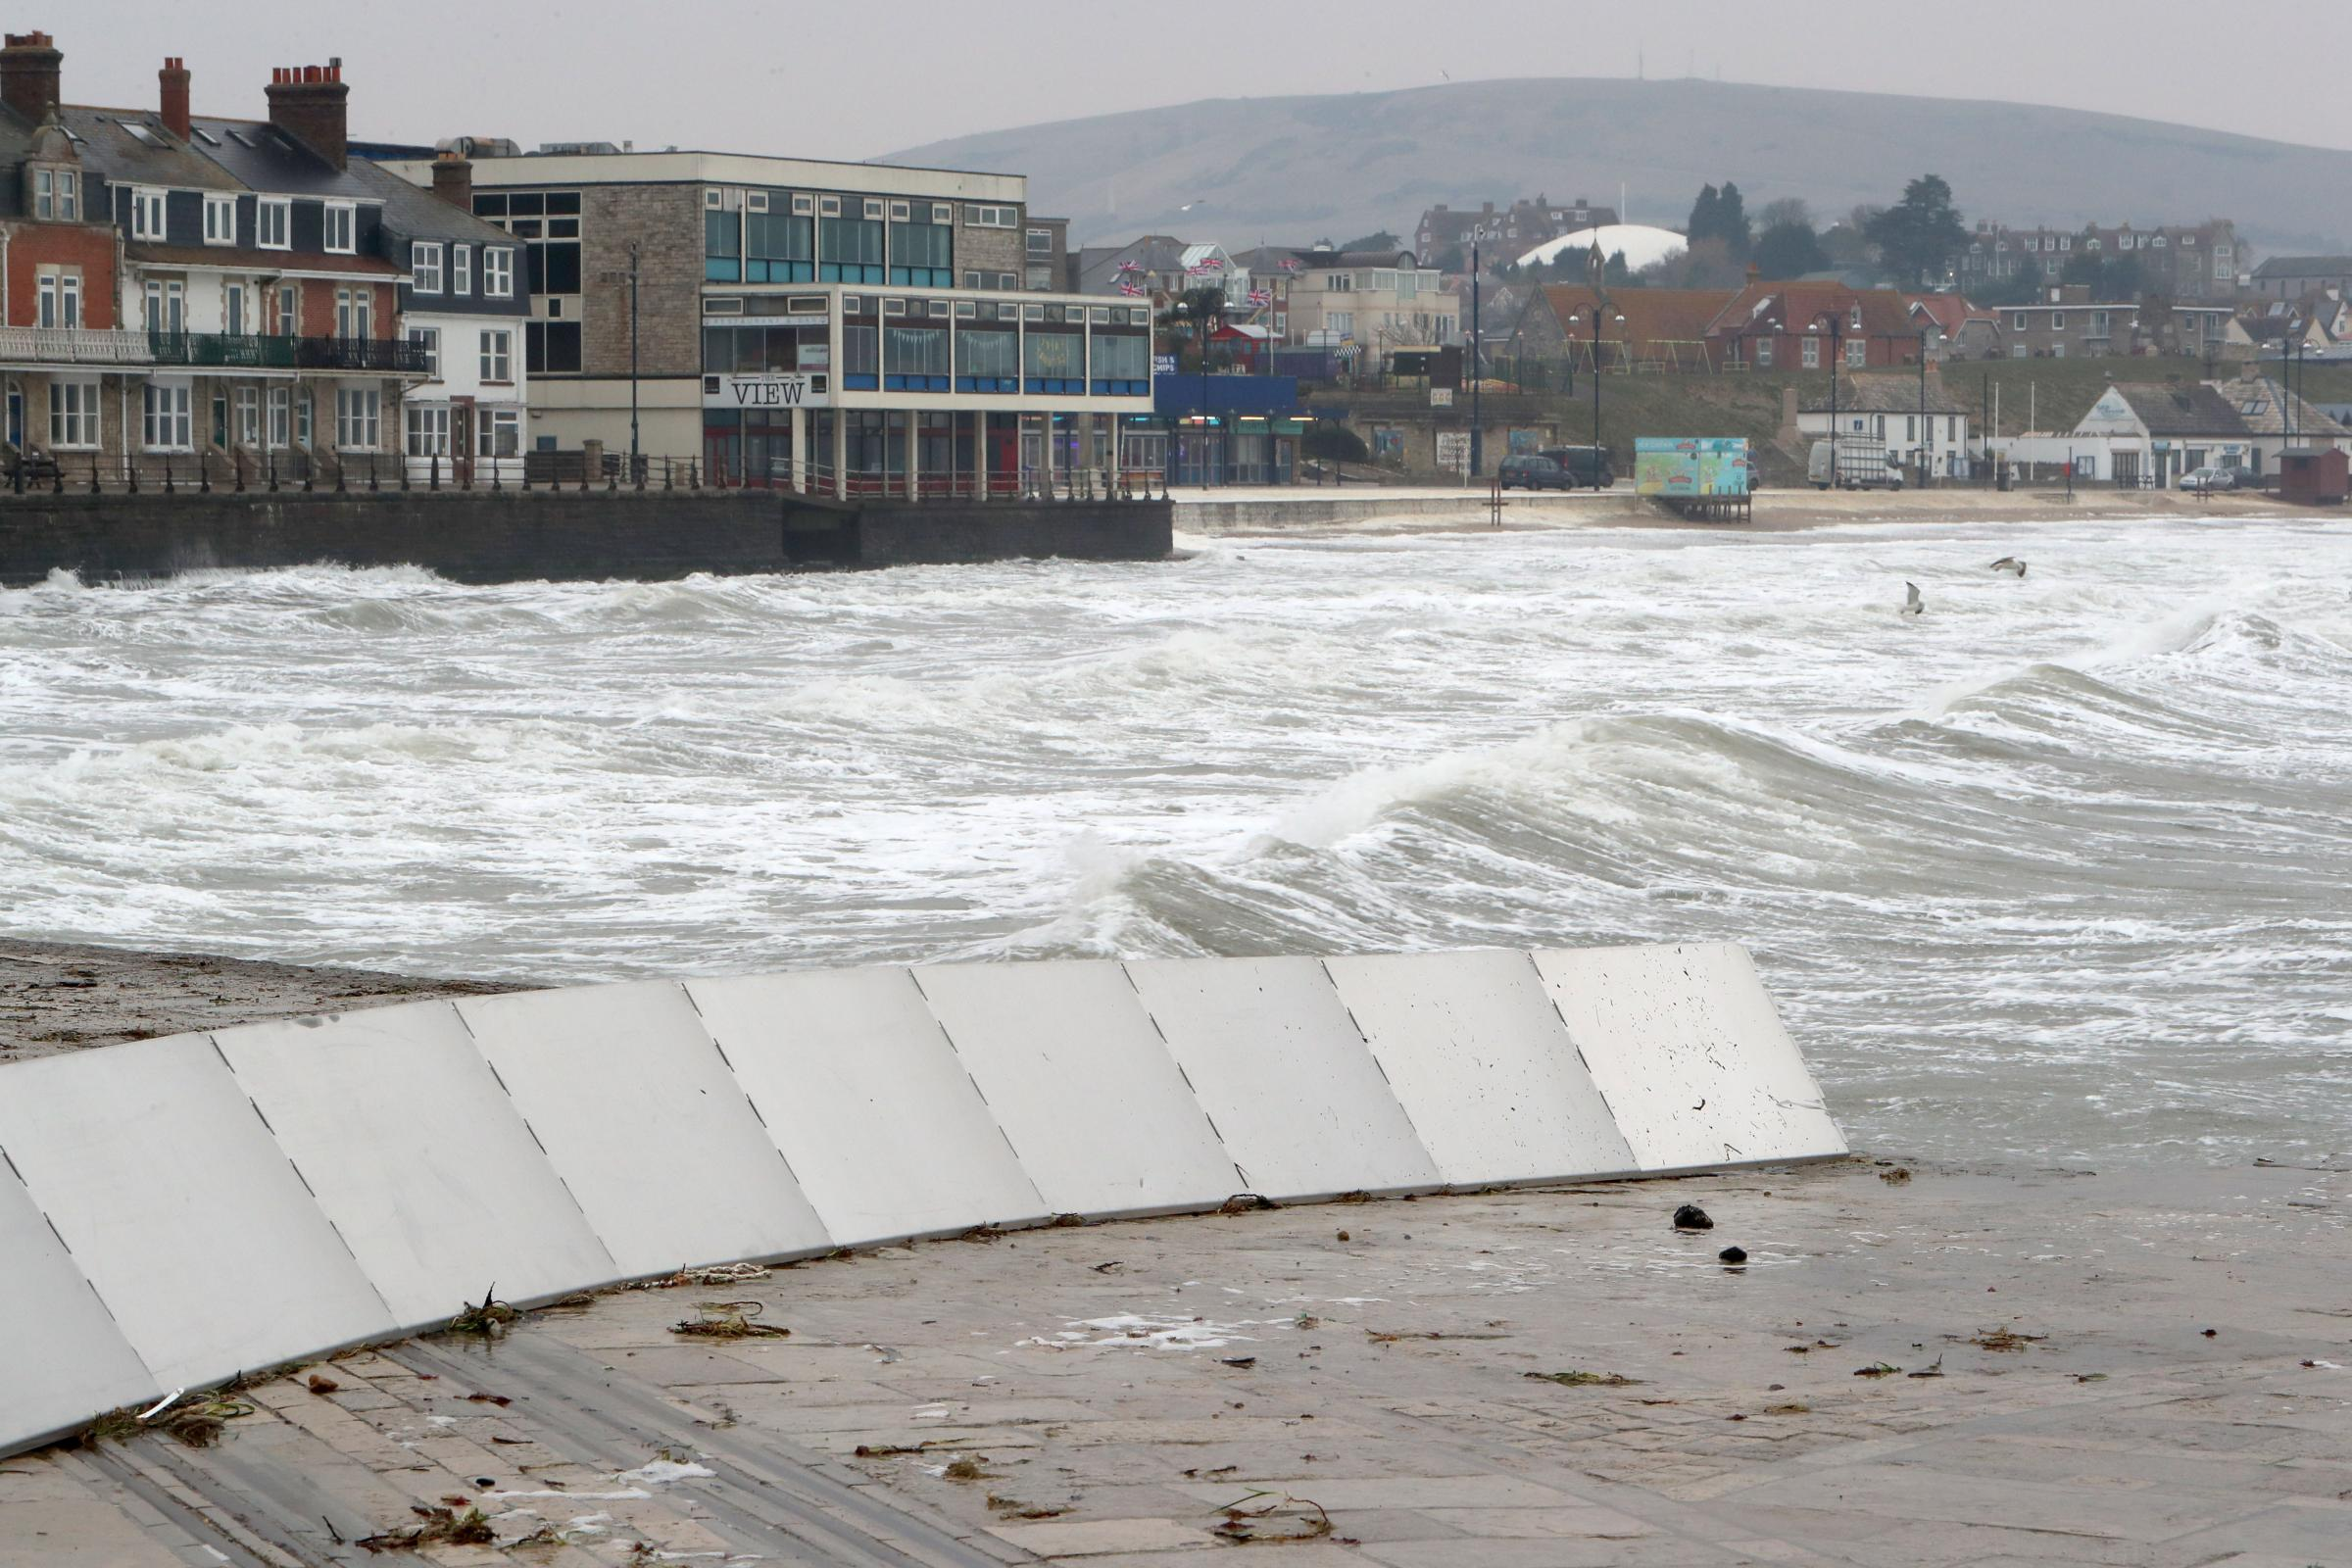 Snow settles over Dorset on Thrusday morning. .Heavy seas at Swanage but very little snow. .The flood defence barrier in place. ..